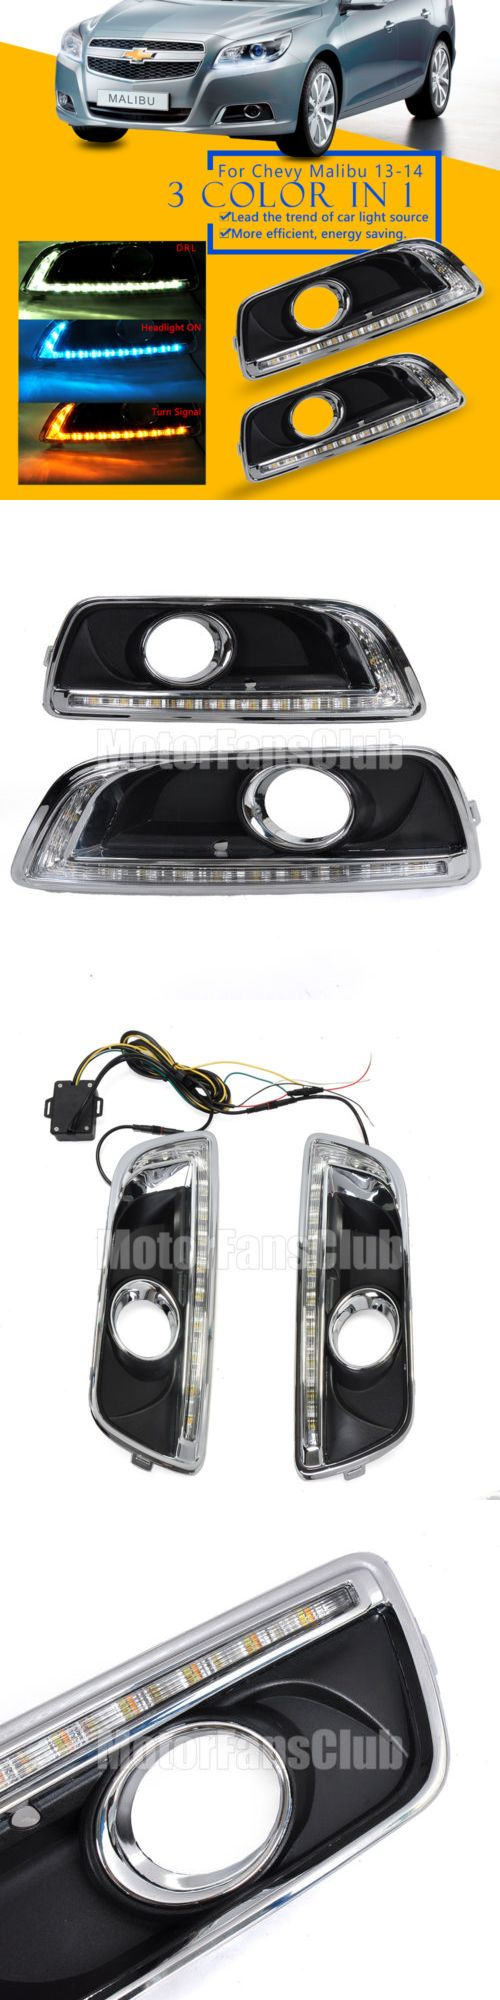 Motors Parts And Accessories: 3 Color Led Drl For Chevy Malibu 2013 2014 Daytime Running Light Fog Lamp W Turn -> BUY IT NOW ONLY: $67.19 on eBay!